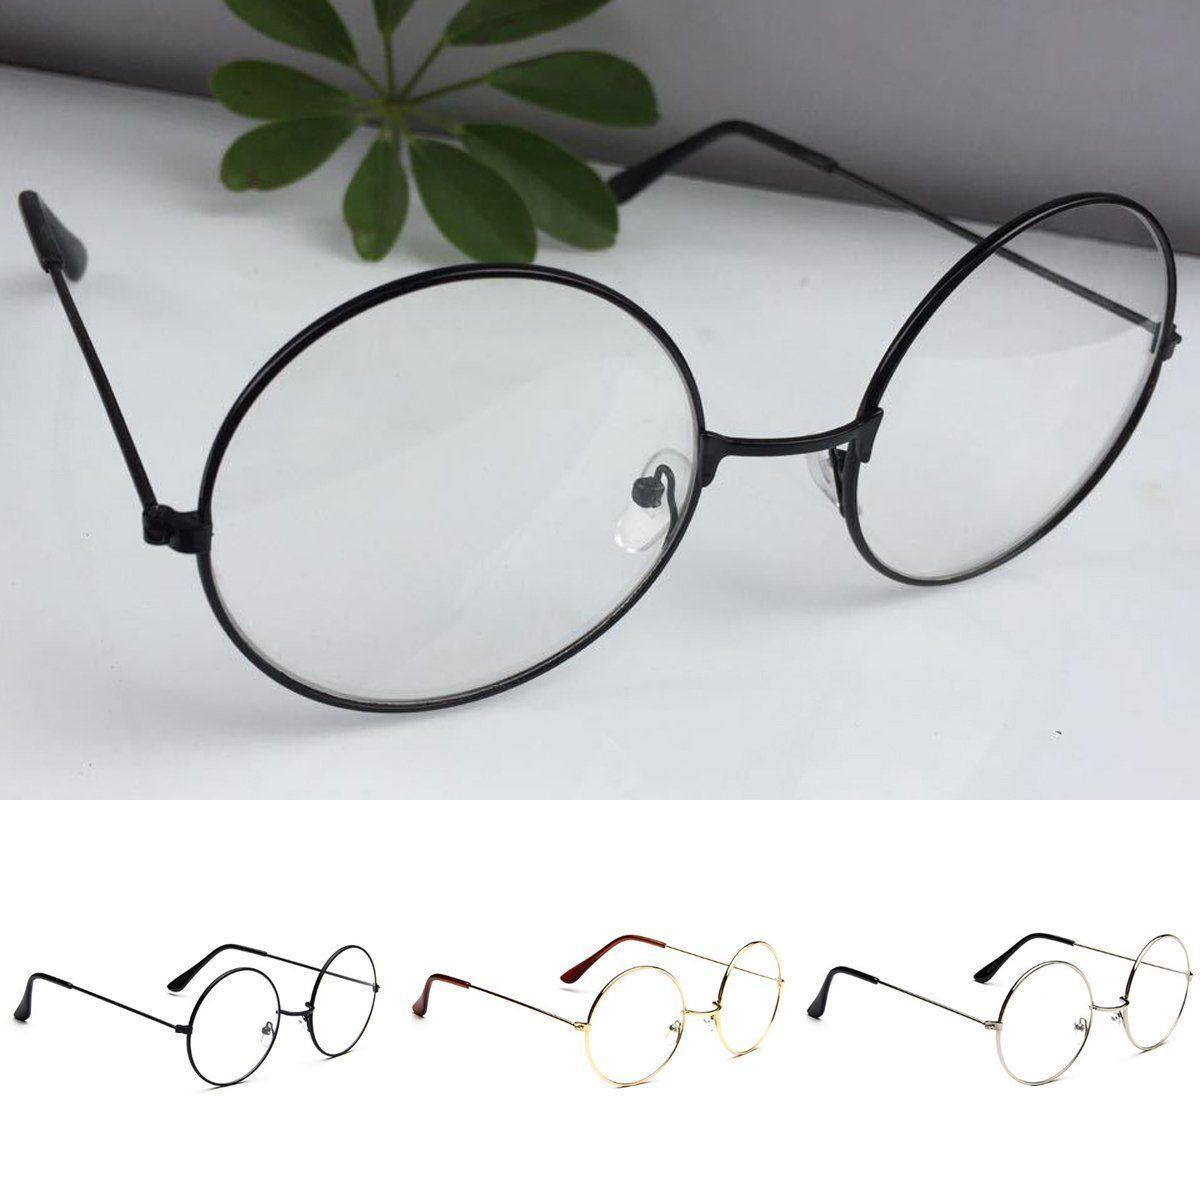 New! Women Large Oversized Lens Circle Glasses